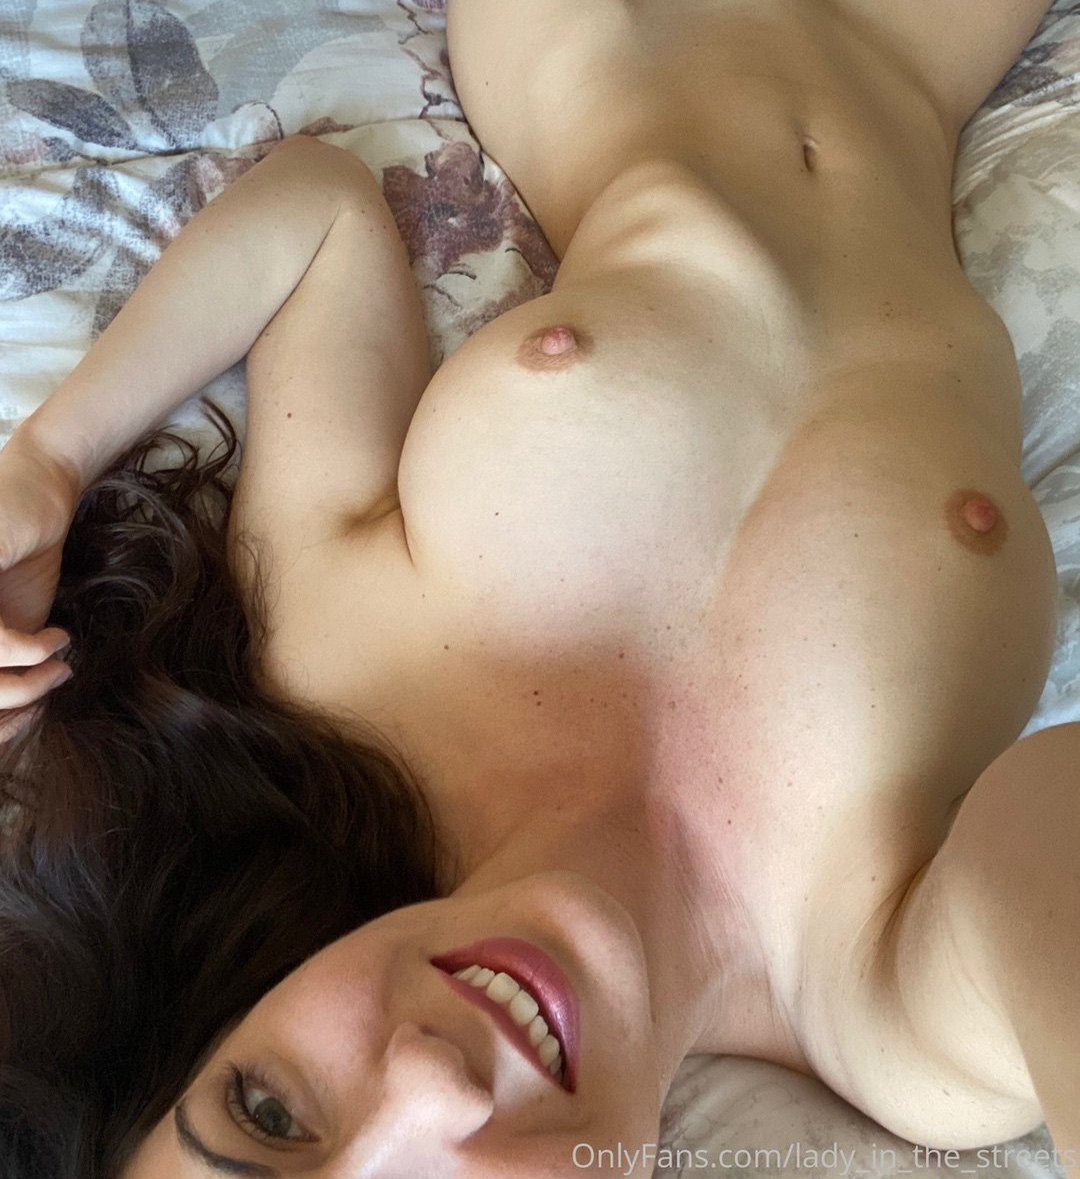 Lady In The Streets Onlyfans Nudes Leaks (0019